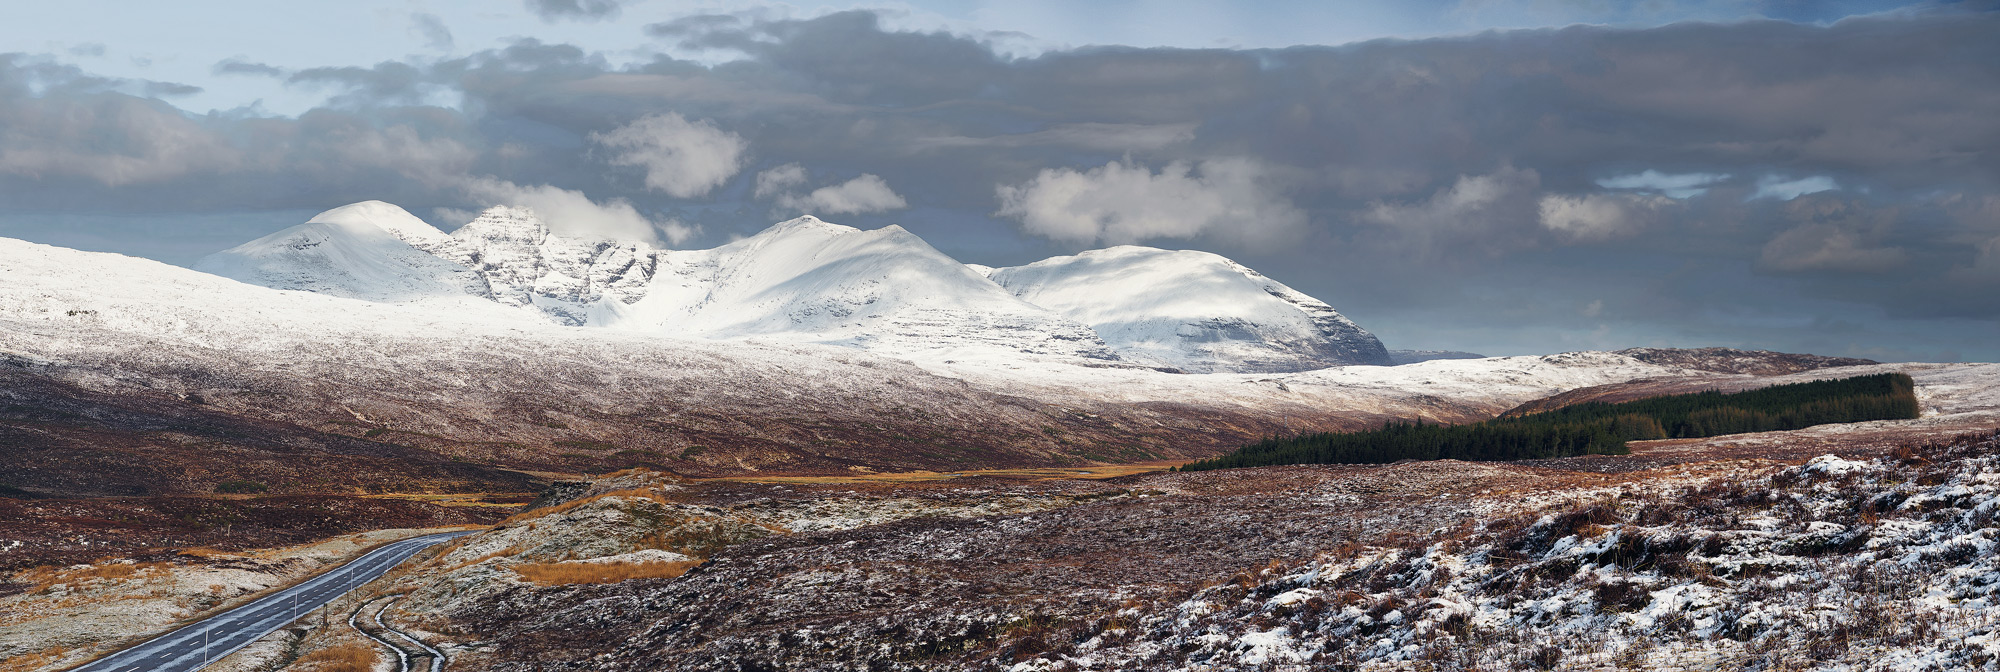 Sunlit and snow clad An Teallach between Braemore Junction and Dundonnell appeared brilliant white with patches of light and shade above the moorland plateau